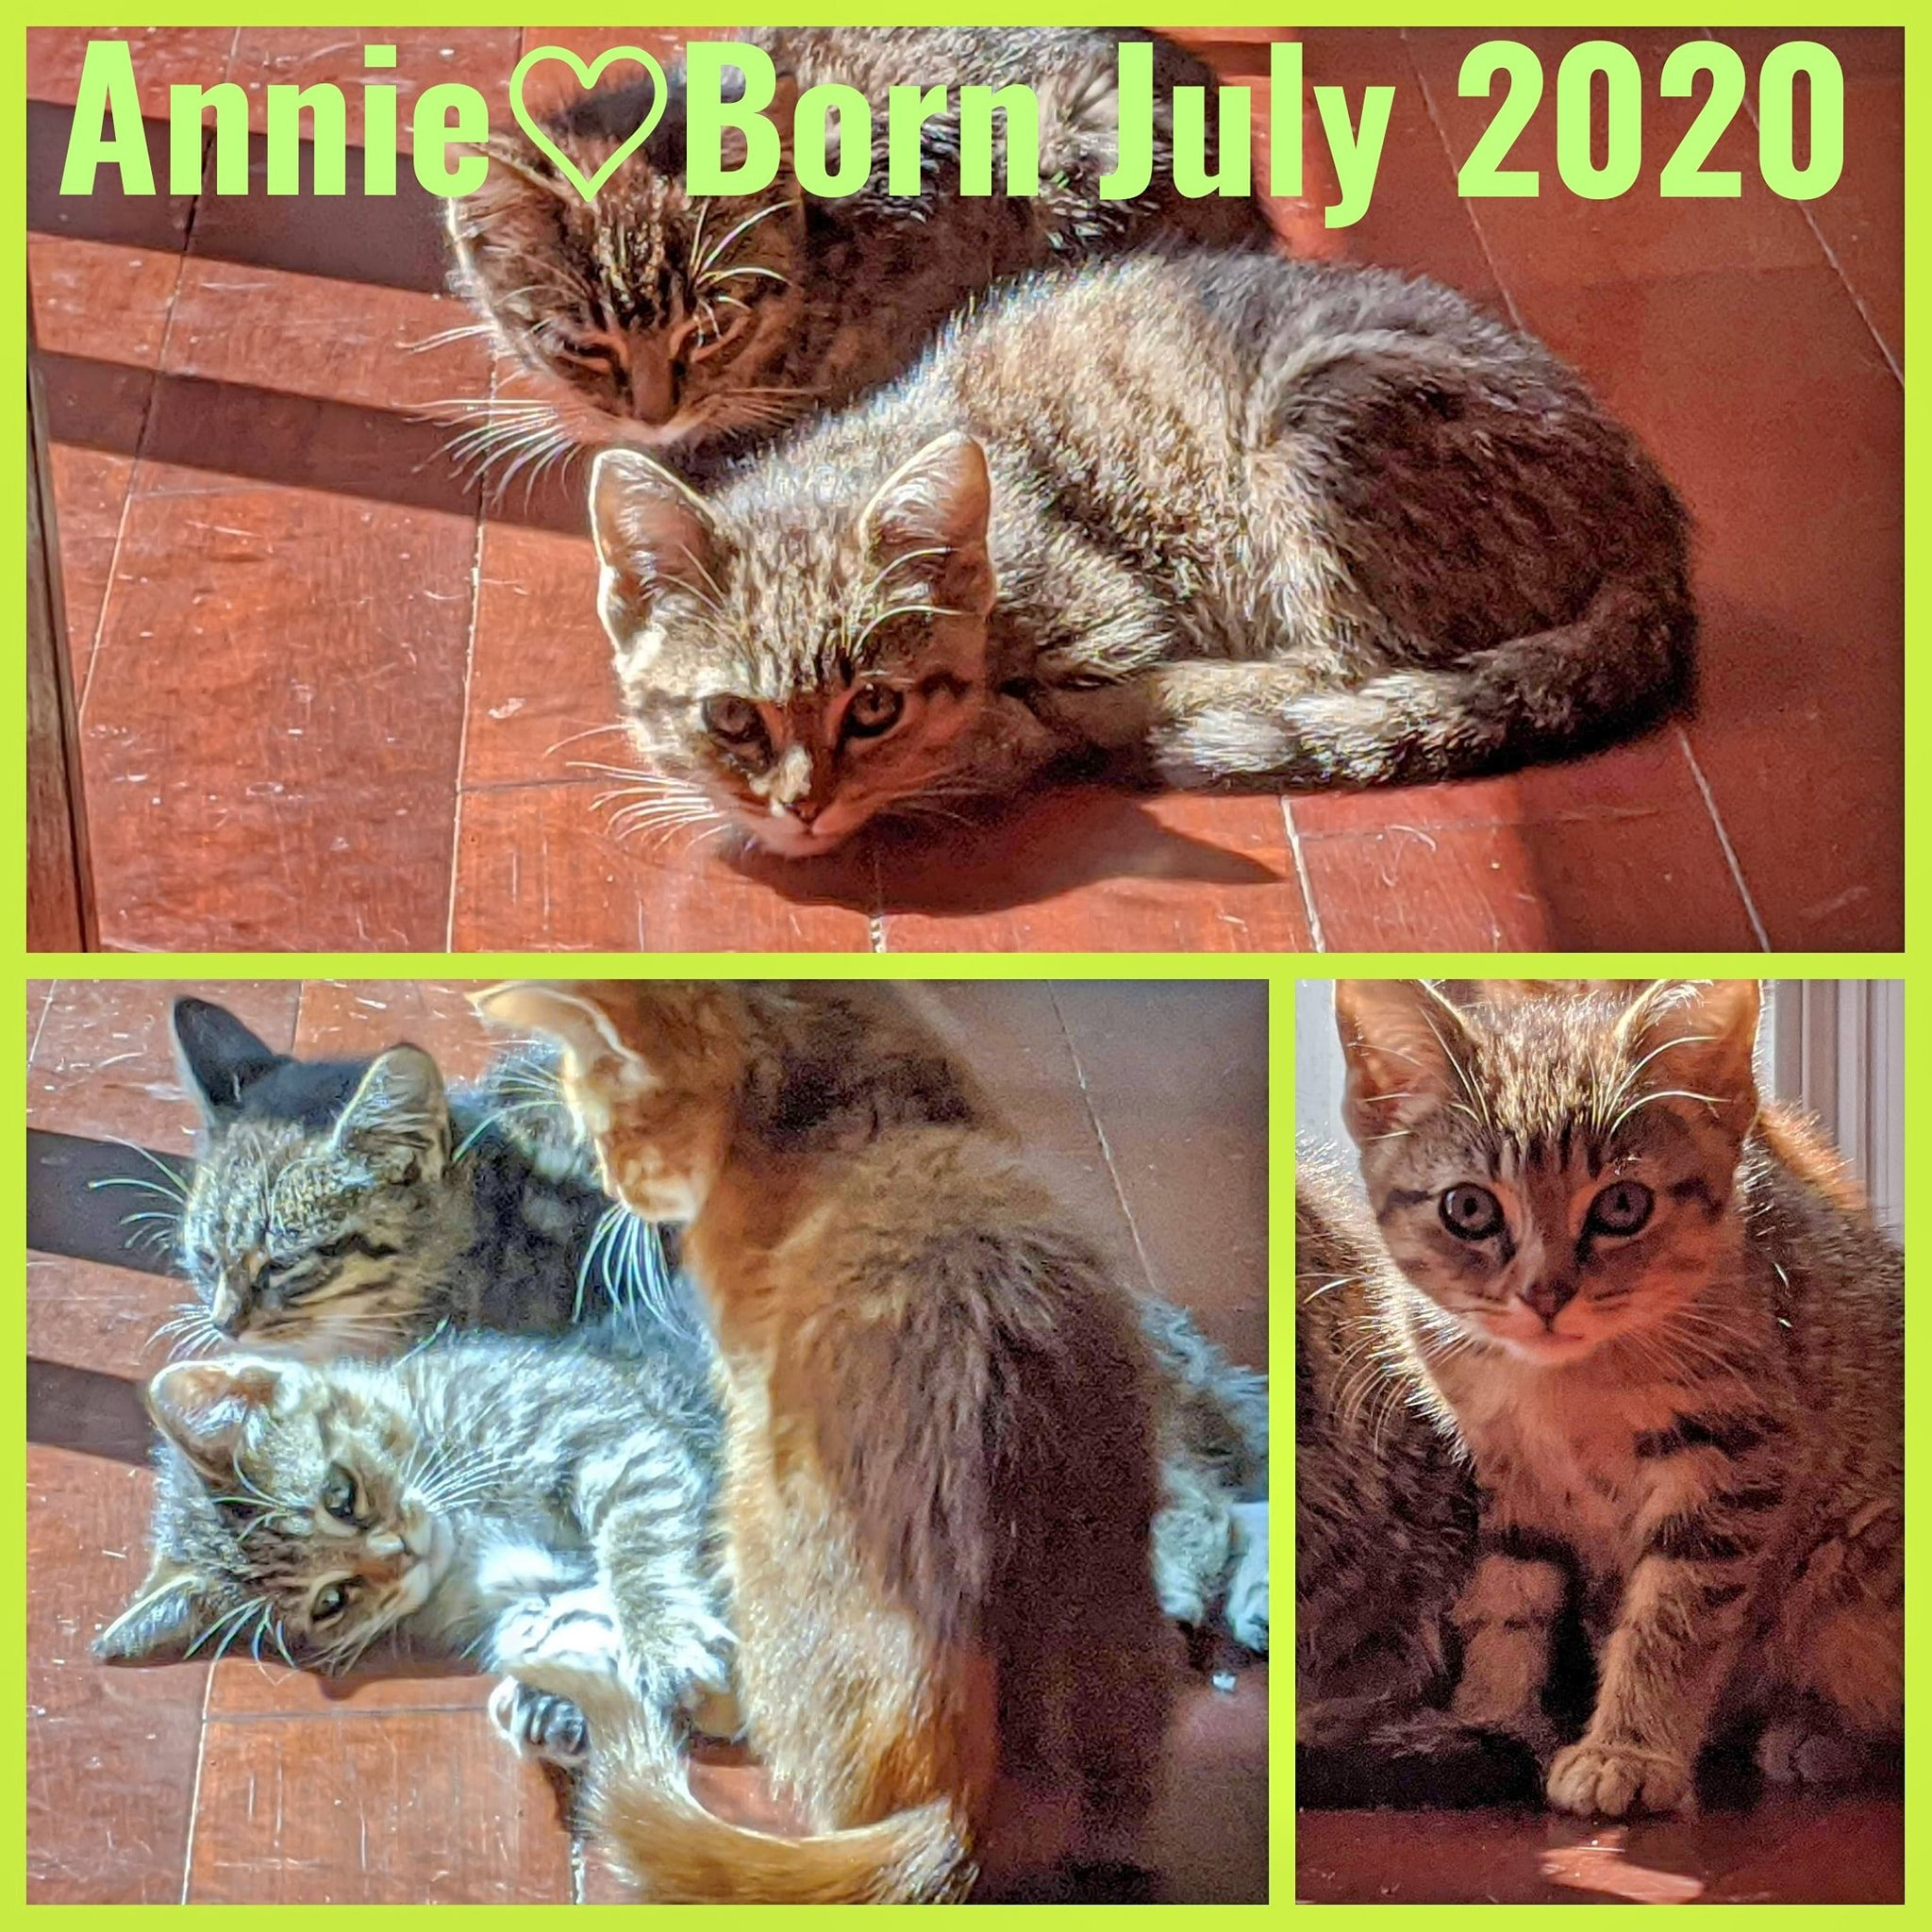 Annie-Female-Born in July 2020